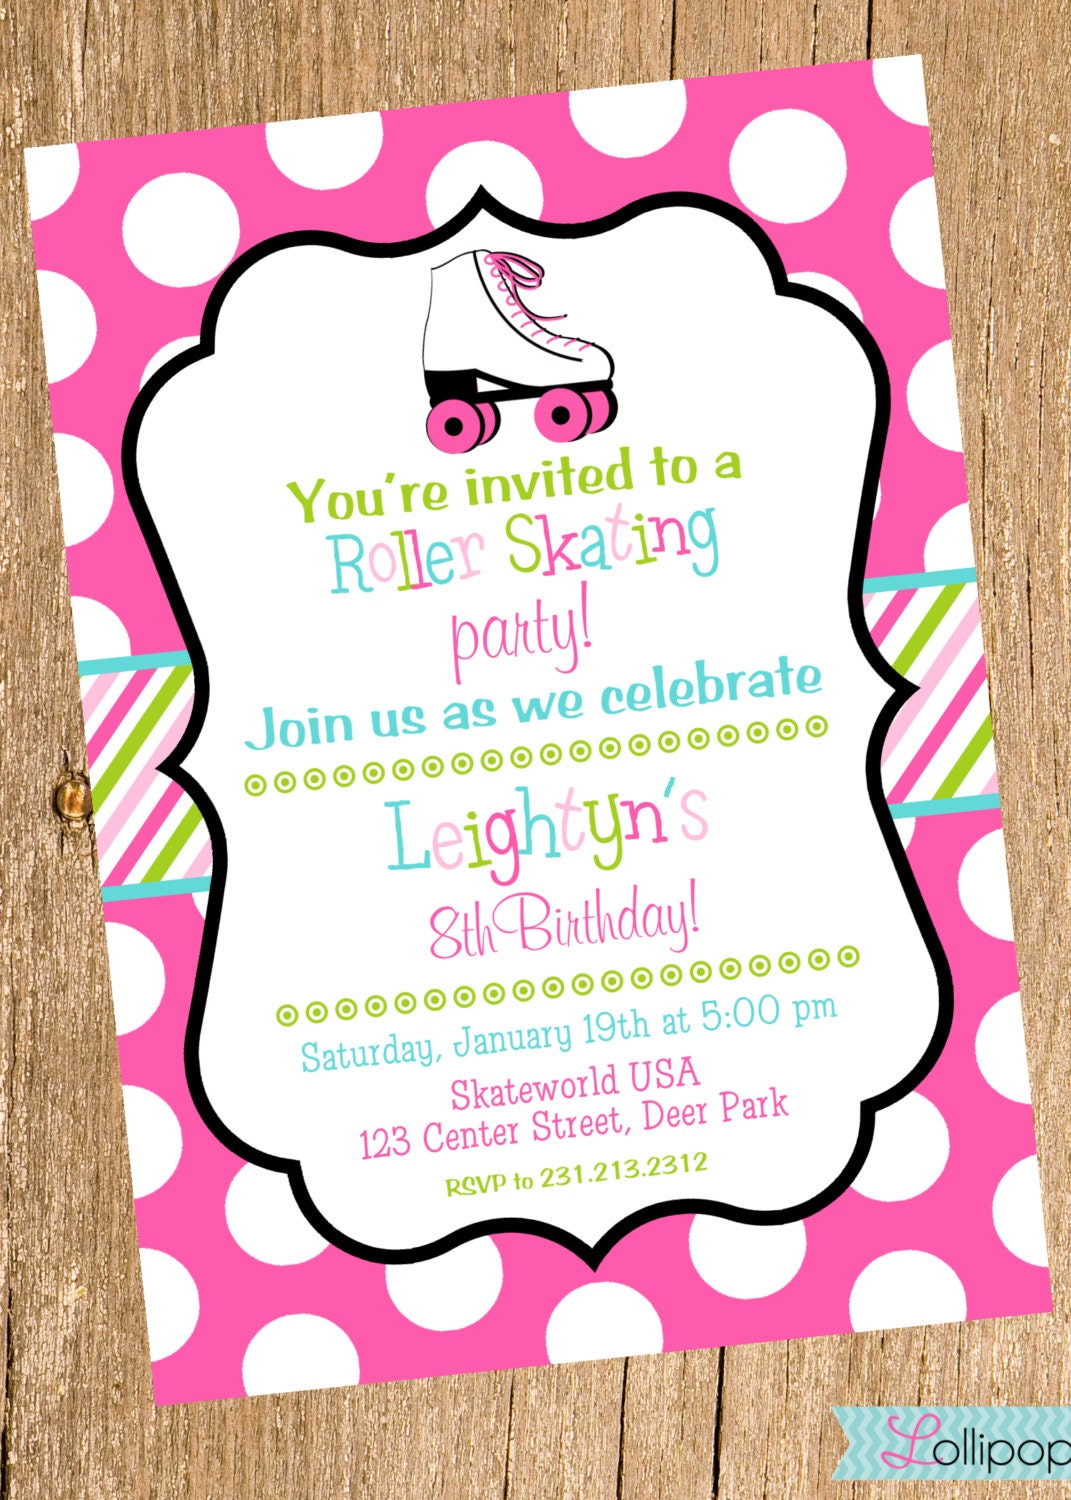 Roller Skating Birthday Party Invitations correctly perfect ideas for your invitation layout